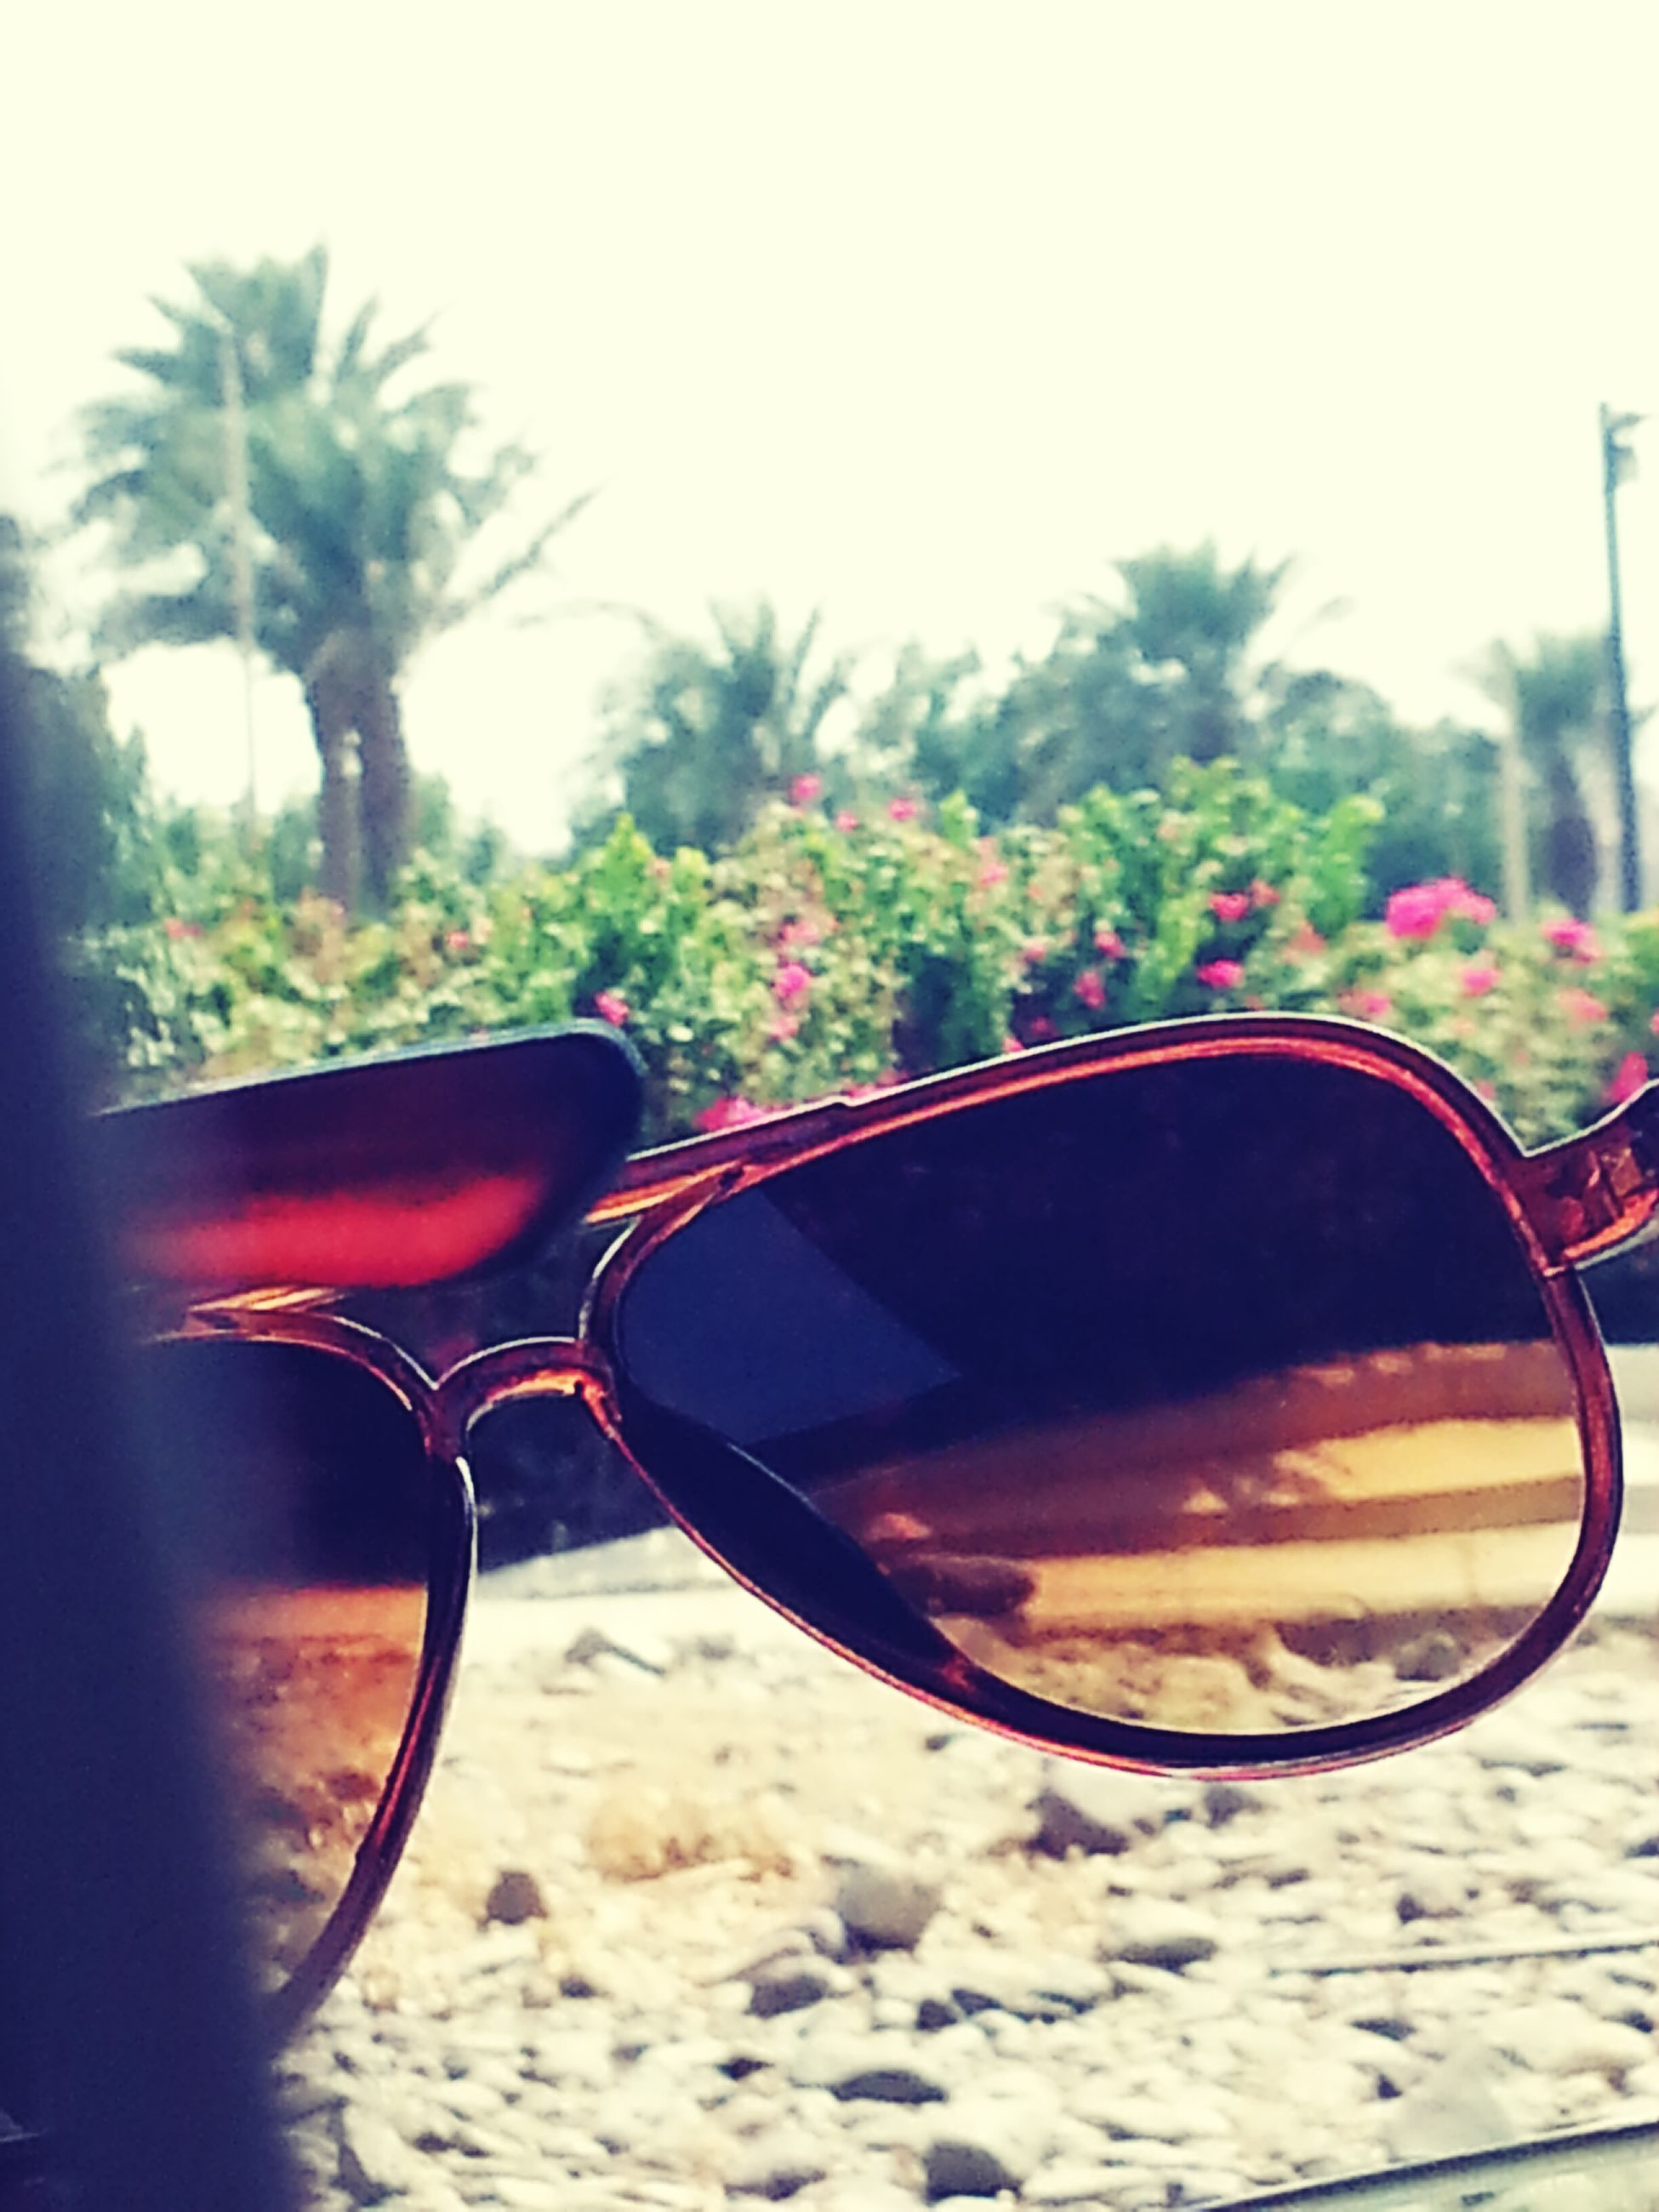 sunglasses, close-up, tree, potted plant, plant, growth, focus on foreground, sunlight, day, clear sky, no people, nature, outdoors, sky, reflection, transportation, land vehicle, table, red, selective focus